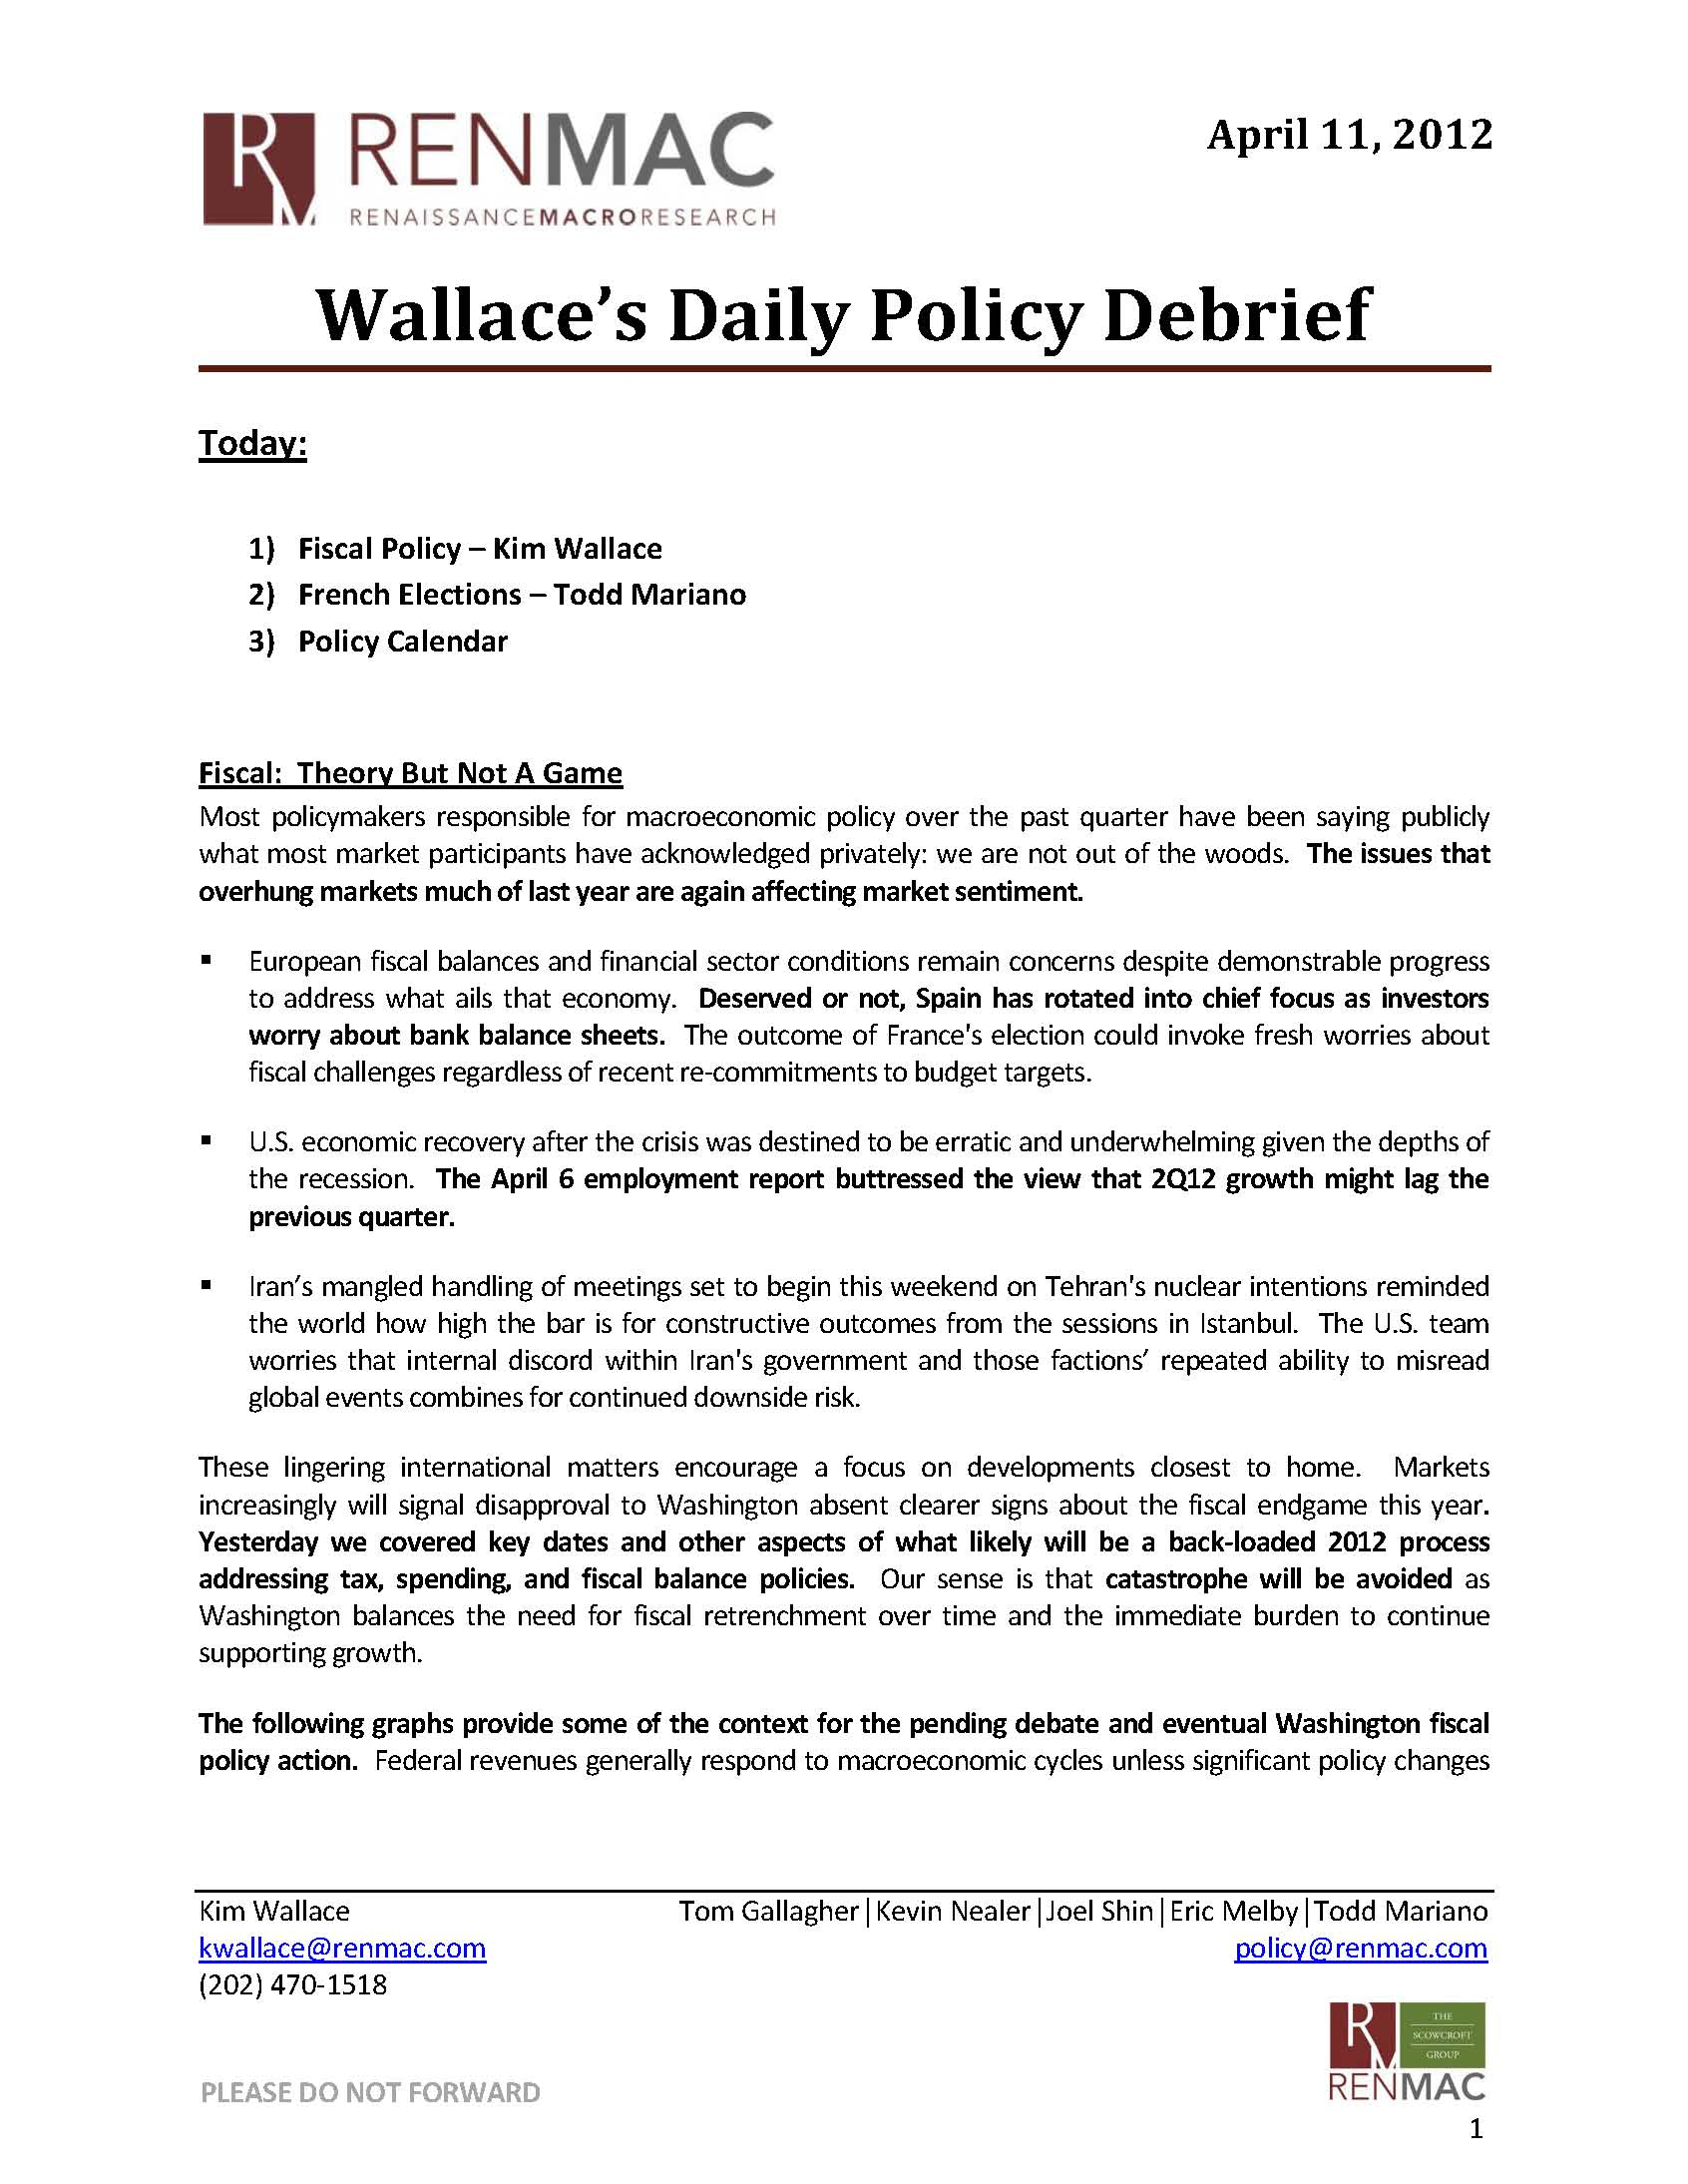 2012-04-11 WDPD_Page_1